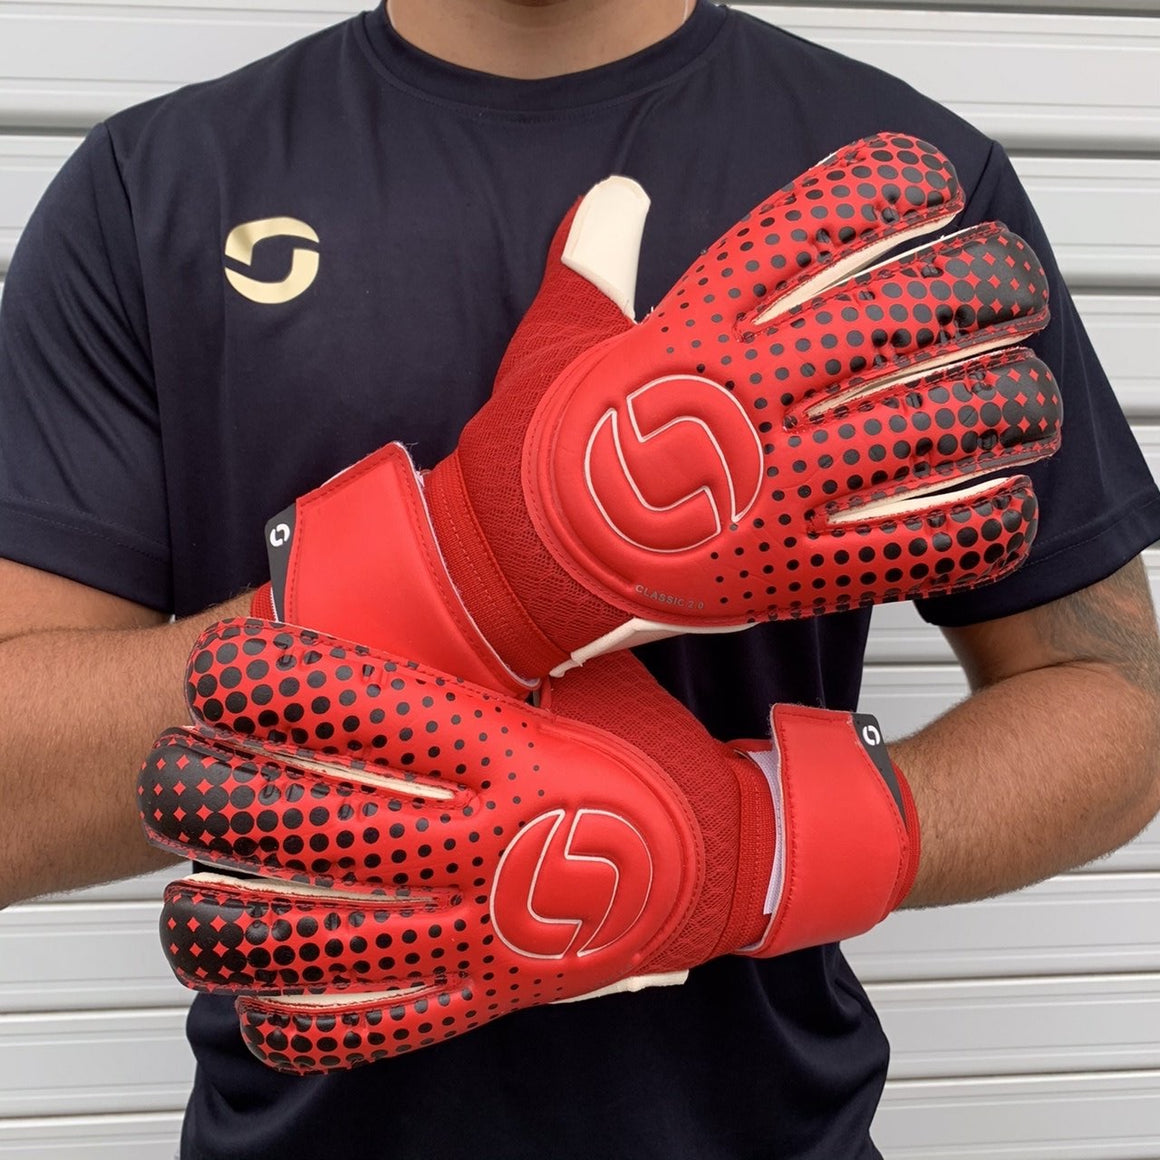 Onesport Classic 2.0 Rollfinger Goalkeeper Gloves Red / White